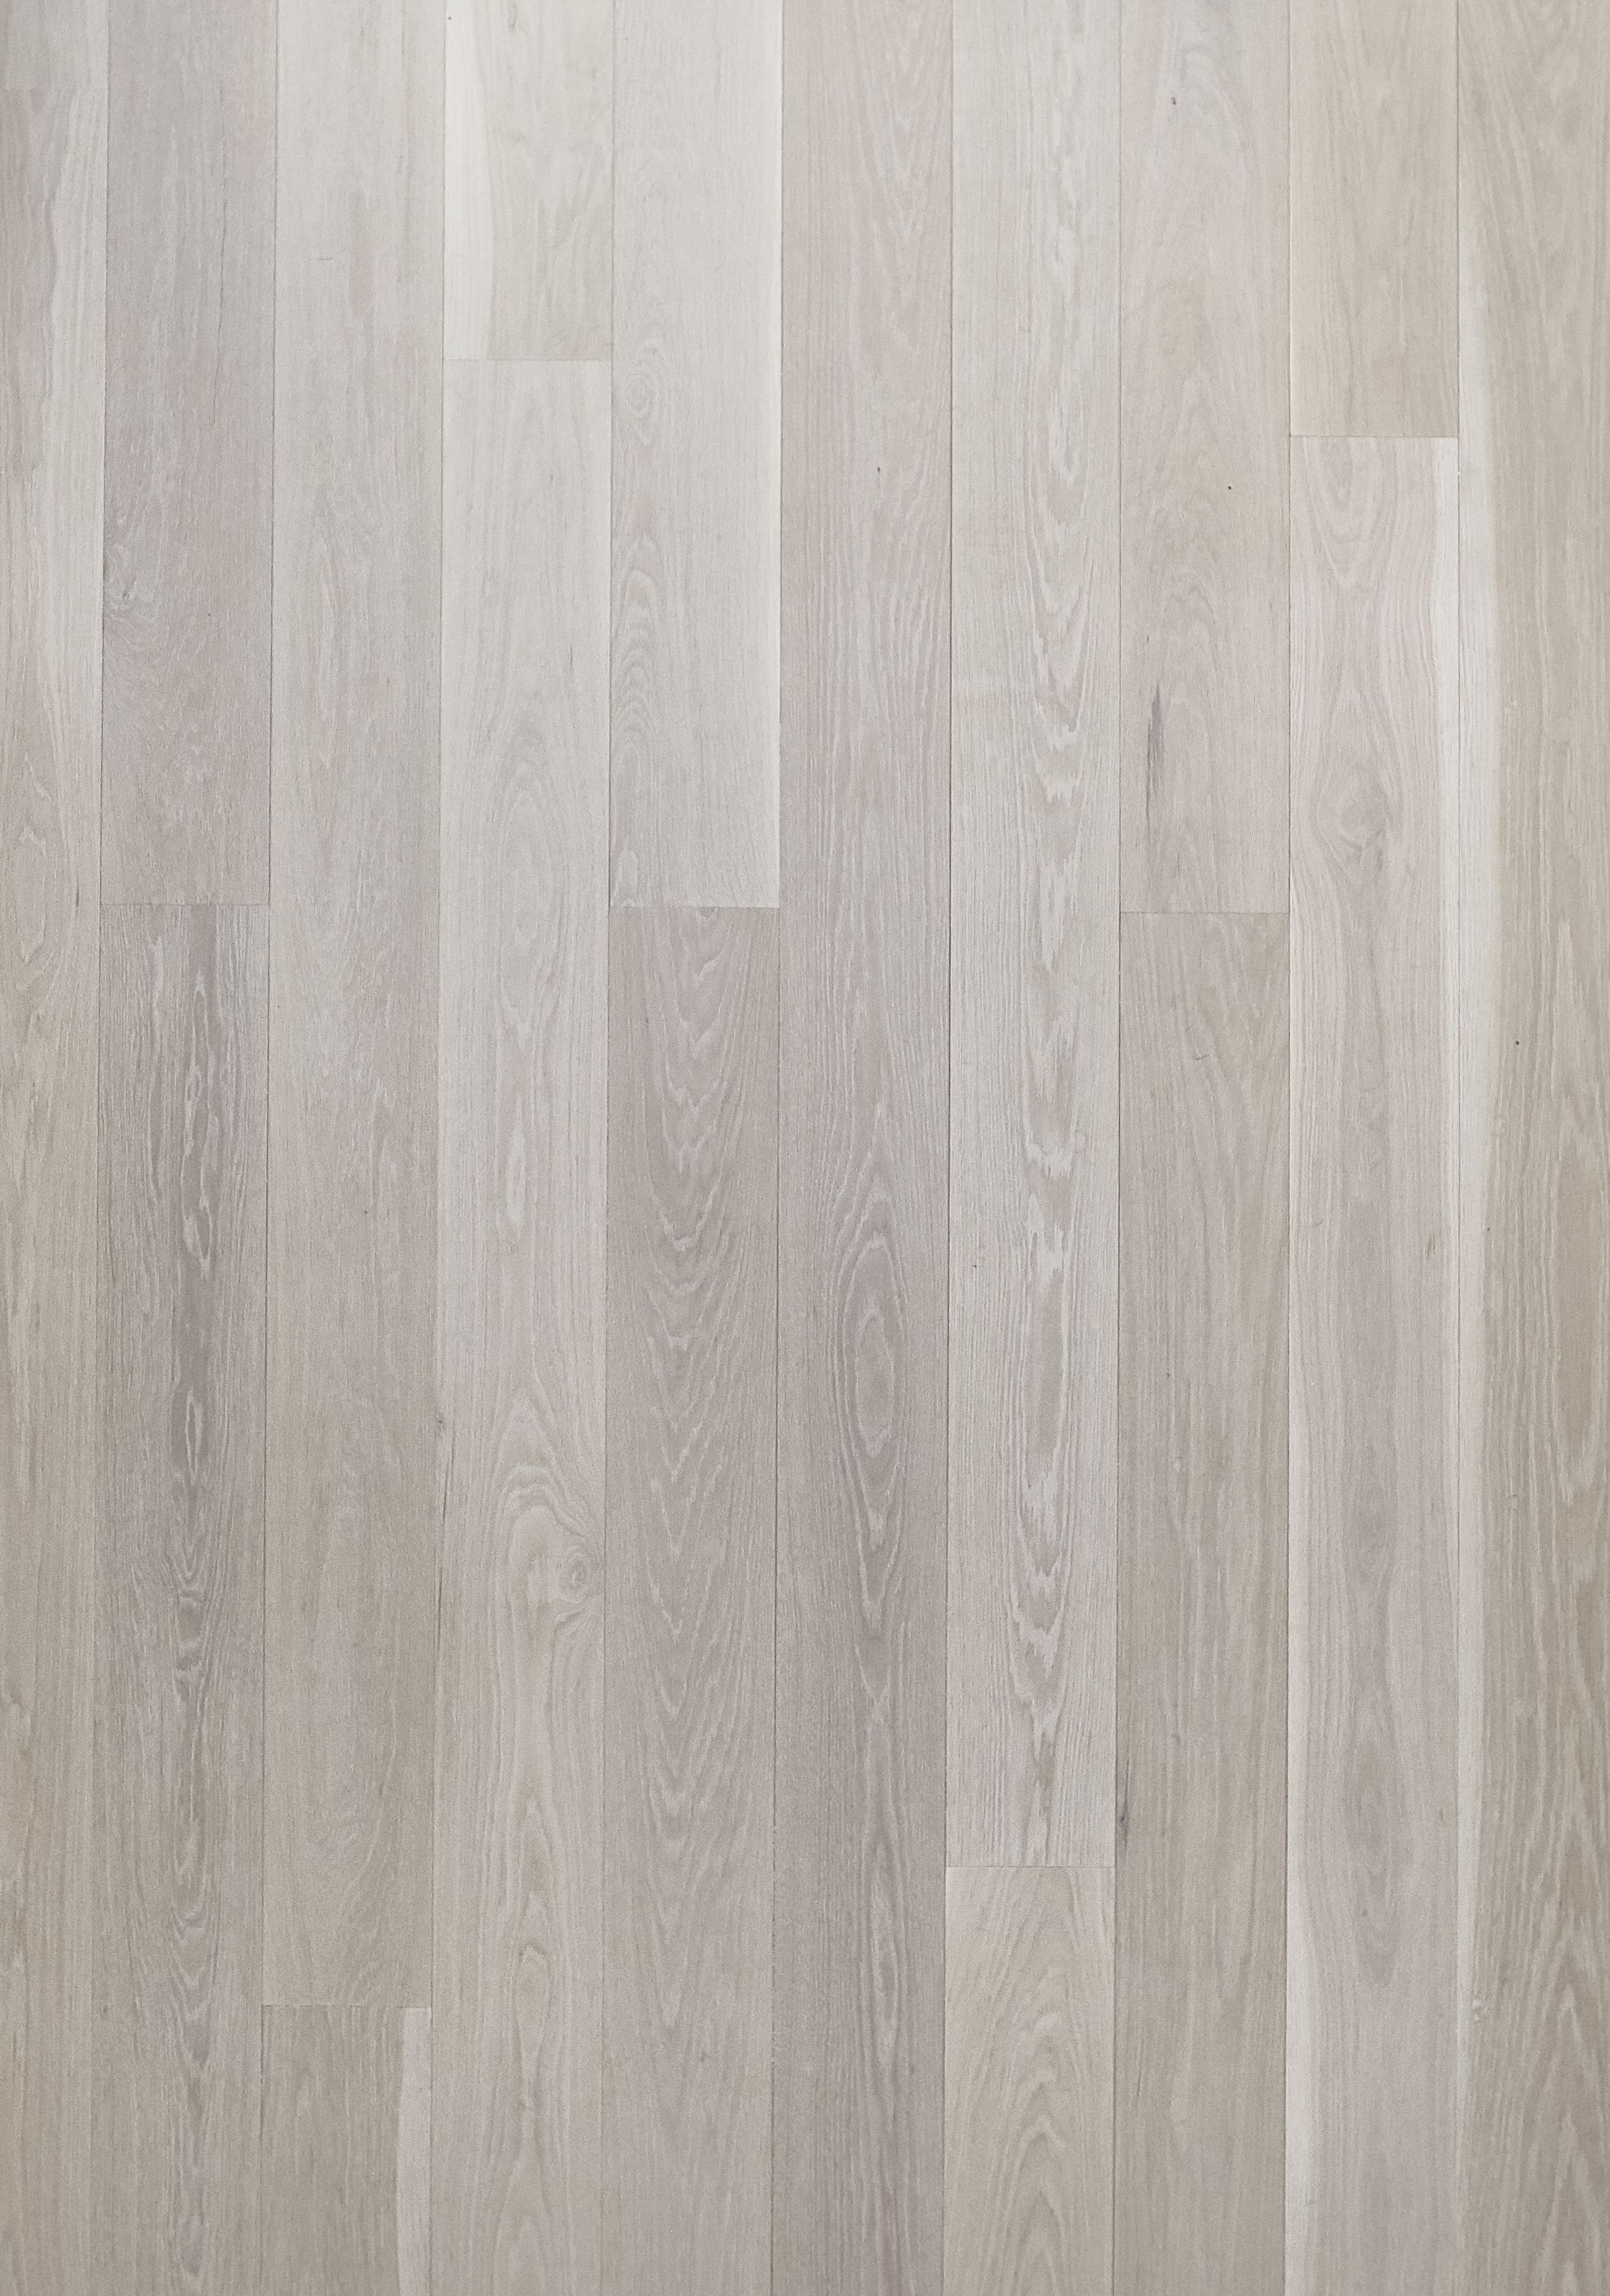 White Floor Texture : white, floor, texture, Junckers, Rustic, White, Boulevard, 185mm, Plank, Solid, Floor, Finished, Oi…, Hardwood, Floors,, Floors